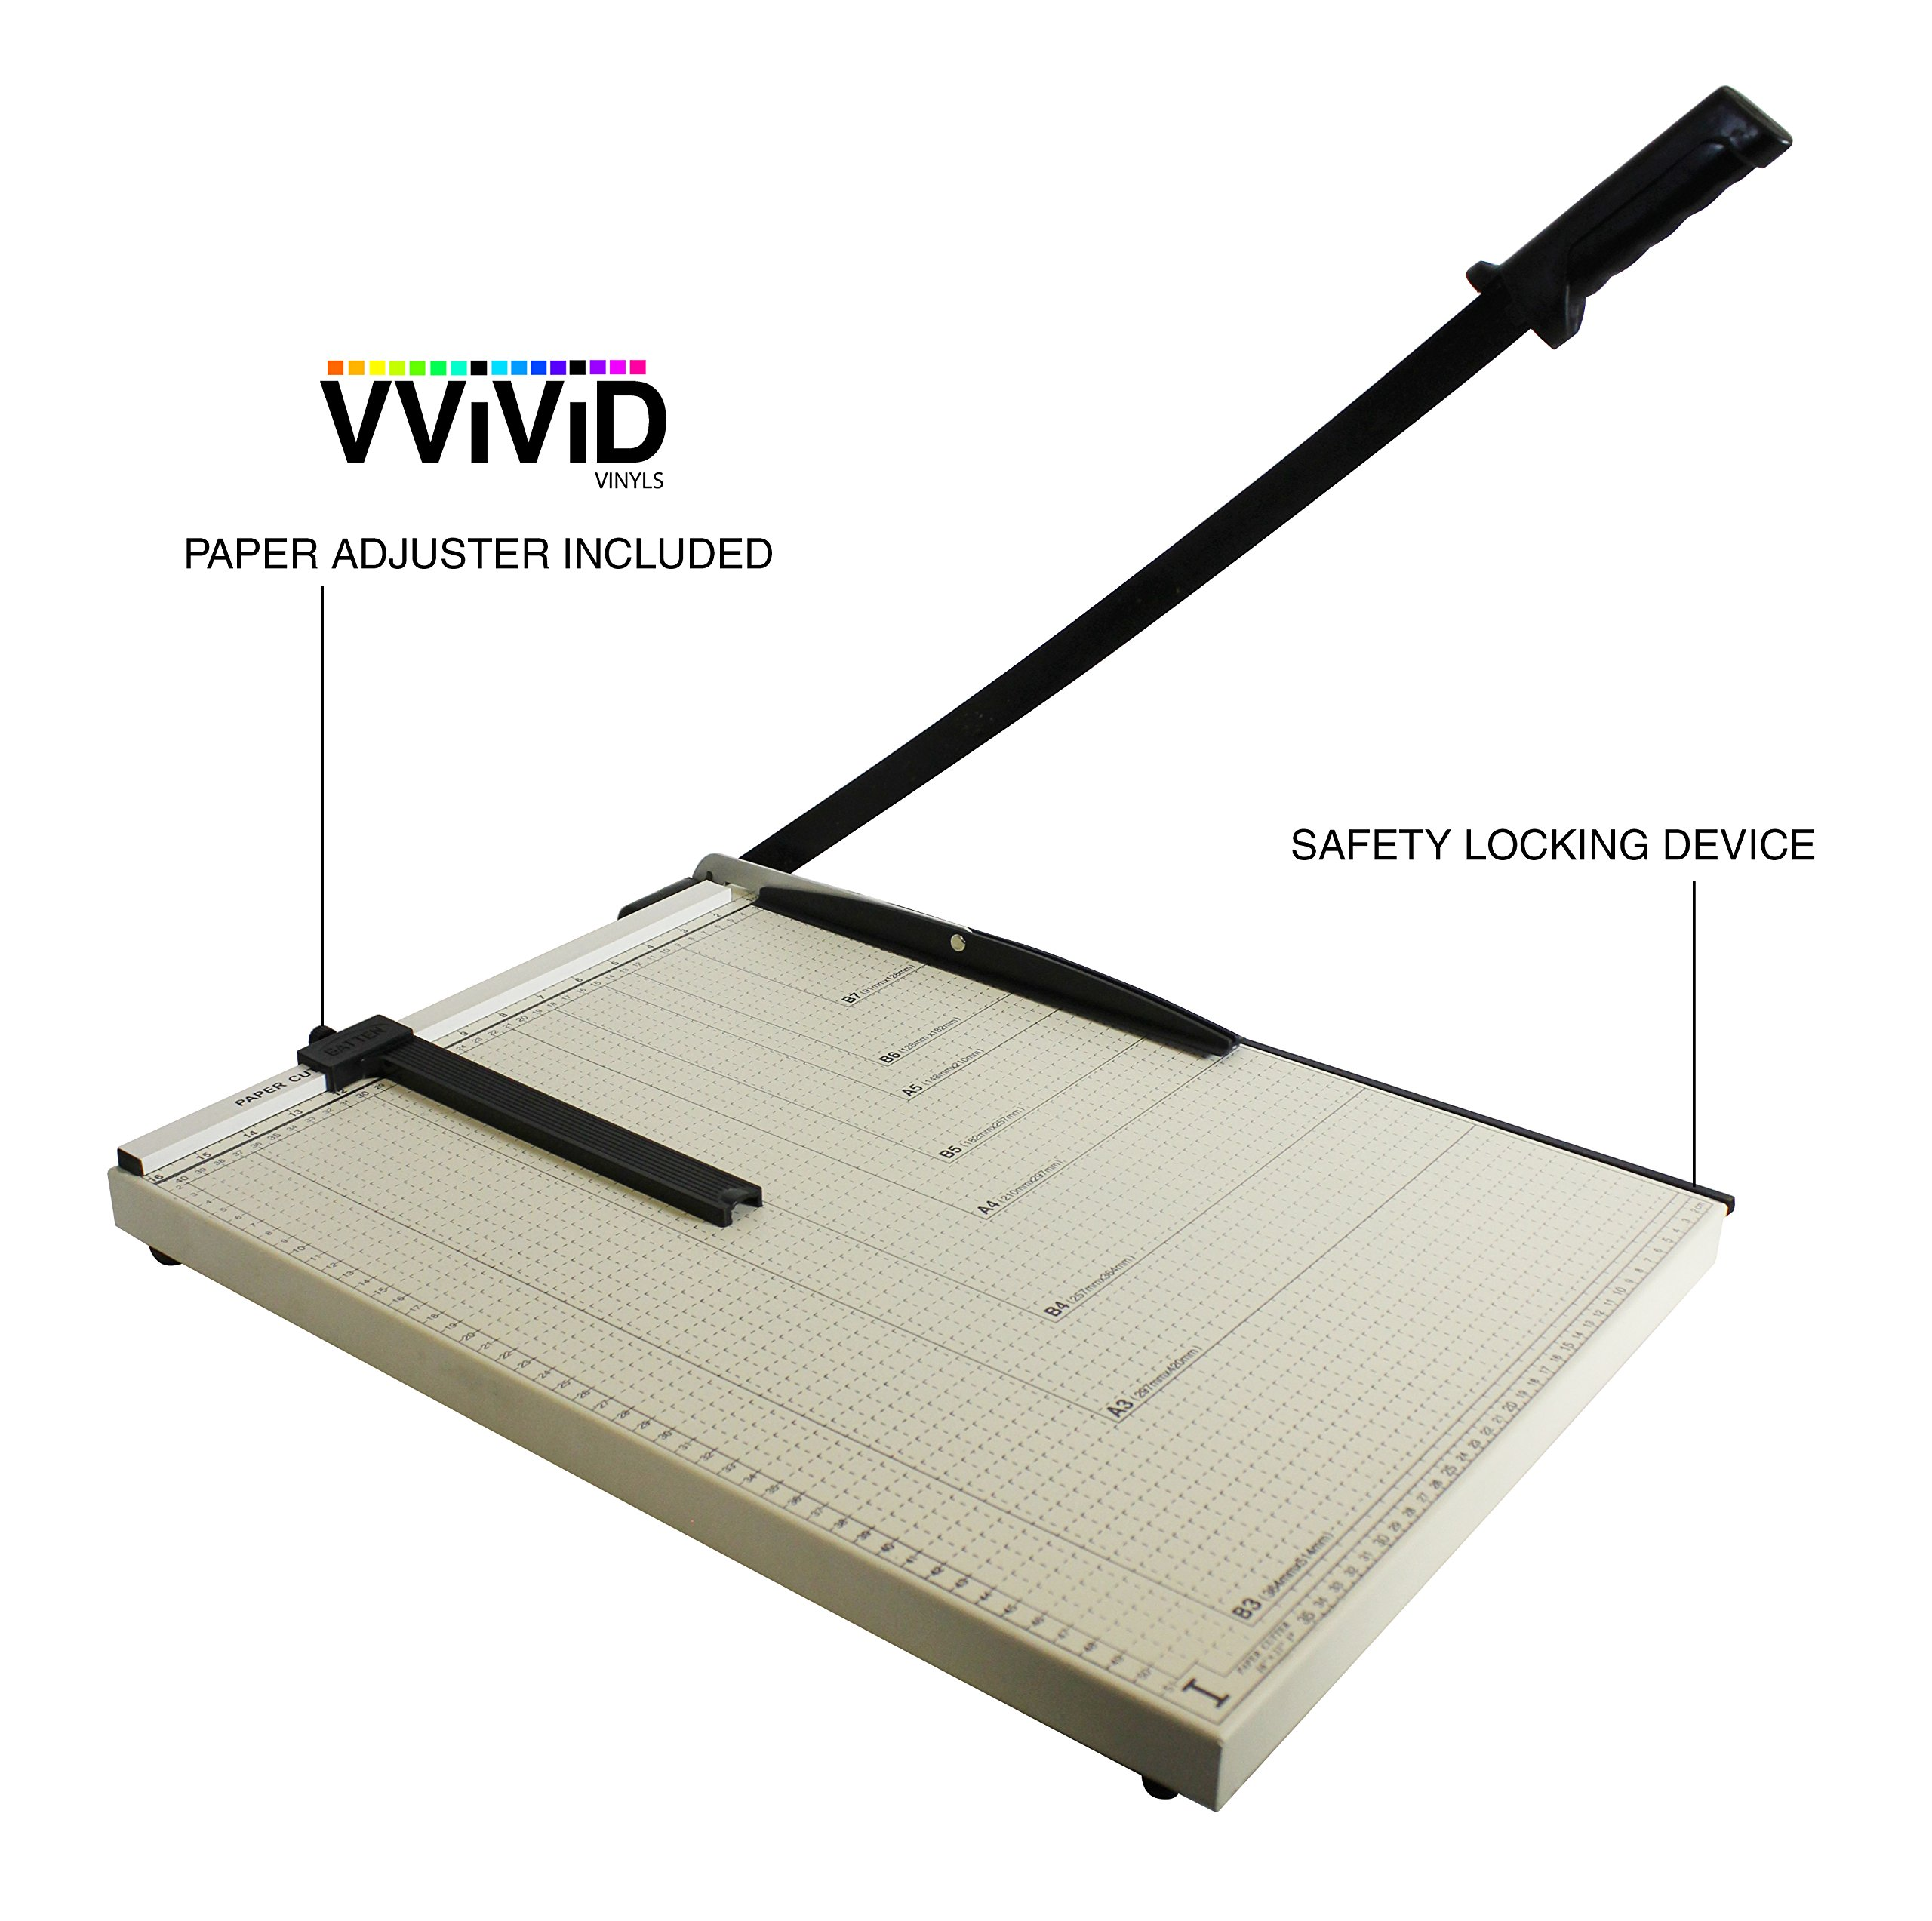 VViViD 21'' x 16'' Guillotine Cutting Blade Gridded Metal Base Paper Trimmer